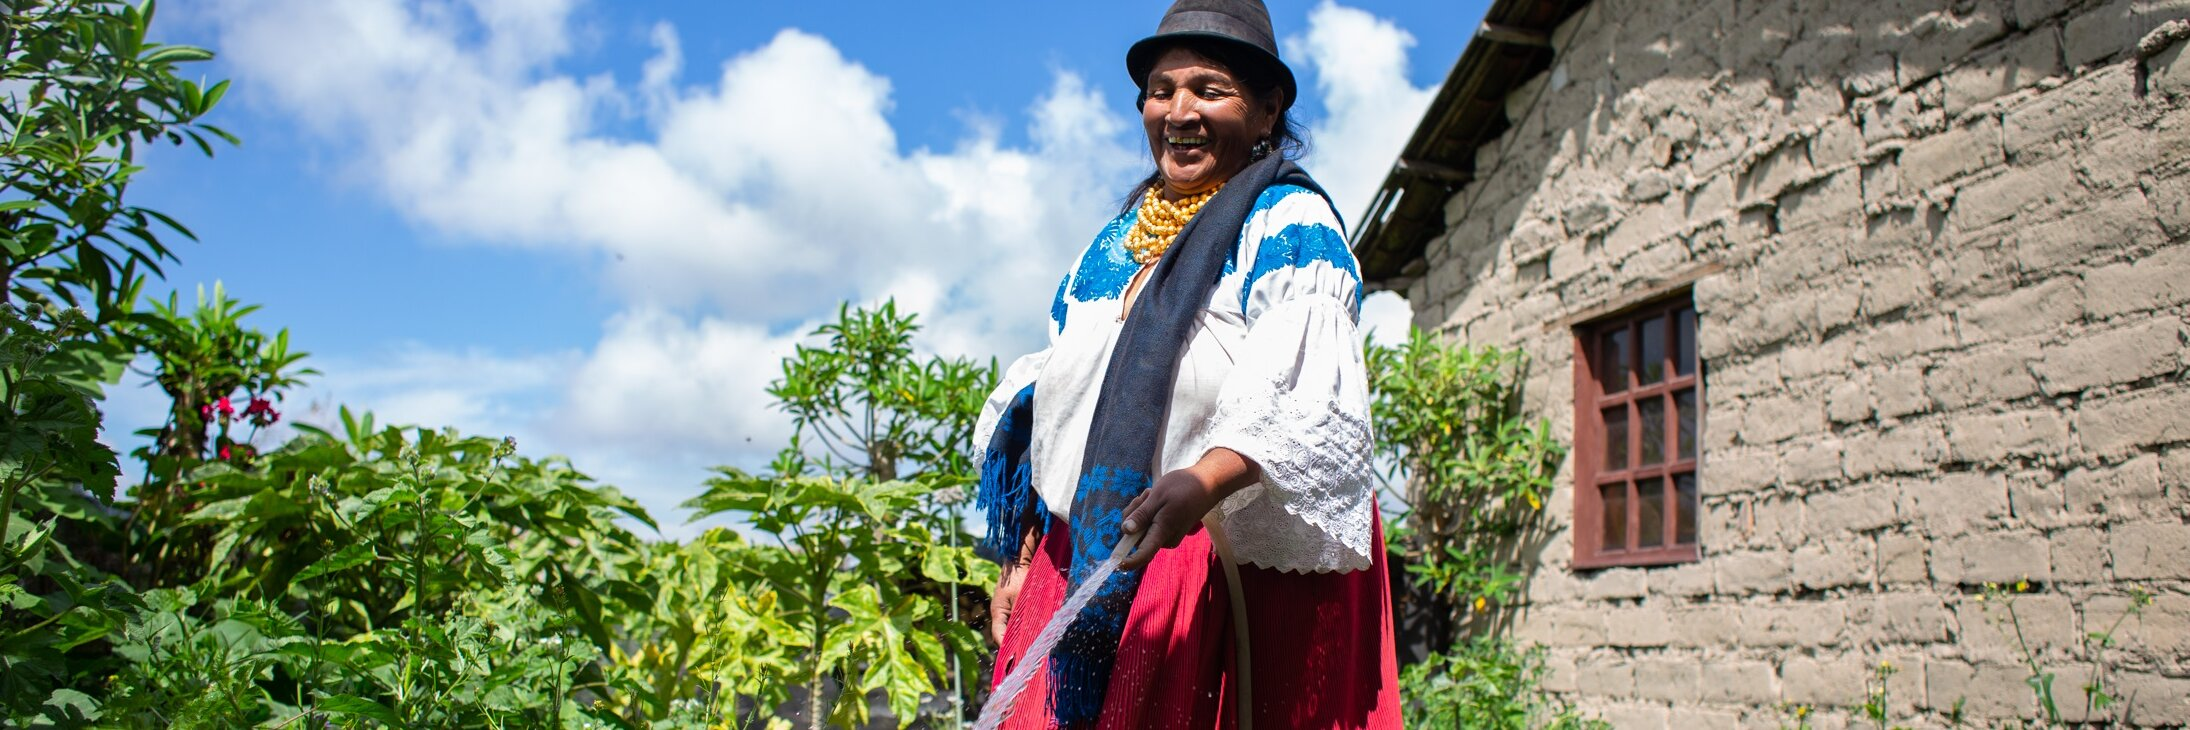 Indigenous female farmer in Ecuador